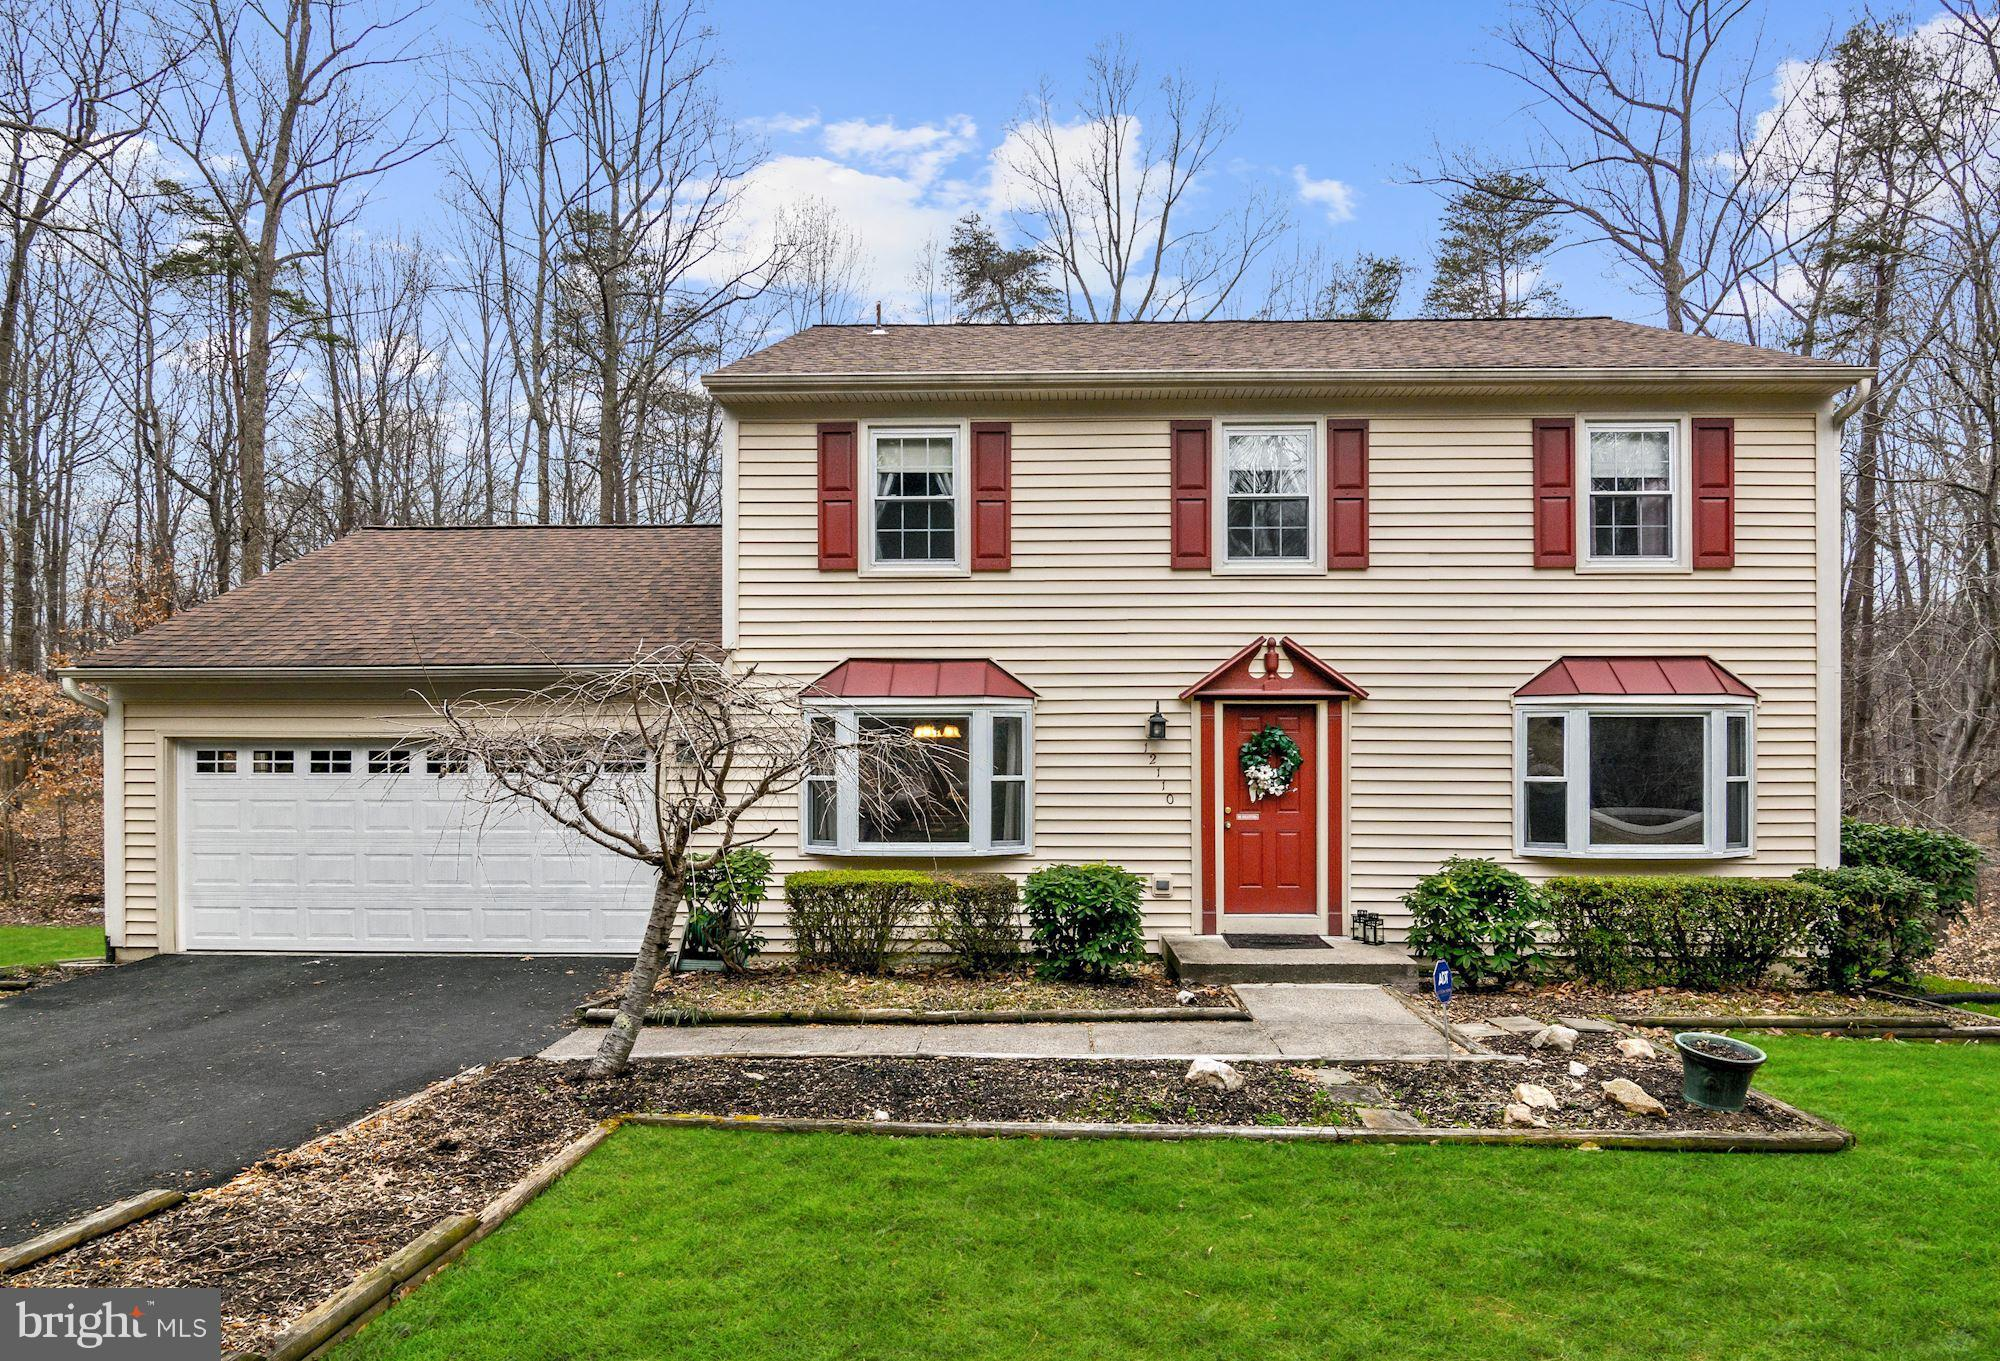 Absolutely gorgeous colonial on private wooded 1.77 acre lot. Totally updated! New gleaming wood floors  &  recent paint & carpet* Eat-in kitch. w/granite countertops & new flooring.  Fabulous FR with gas FP & patio door to deck . Remodeled baths w/designer tile & upscale vanities.  MBR w/walk-in closet. Main level Laundry. Walk-out basement w/ Rec RM, loads of storage plus room for expansion.  New driveway &  oversized garage with new  door. Updated roof, siding,  gutters & windows.Enjoy the tranquil country setting yet just a few minutes to all the amenities.NO HOA. One year warranty.